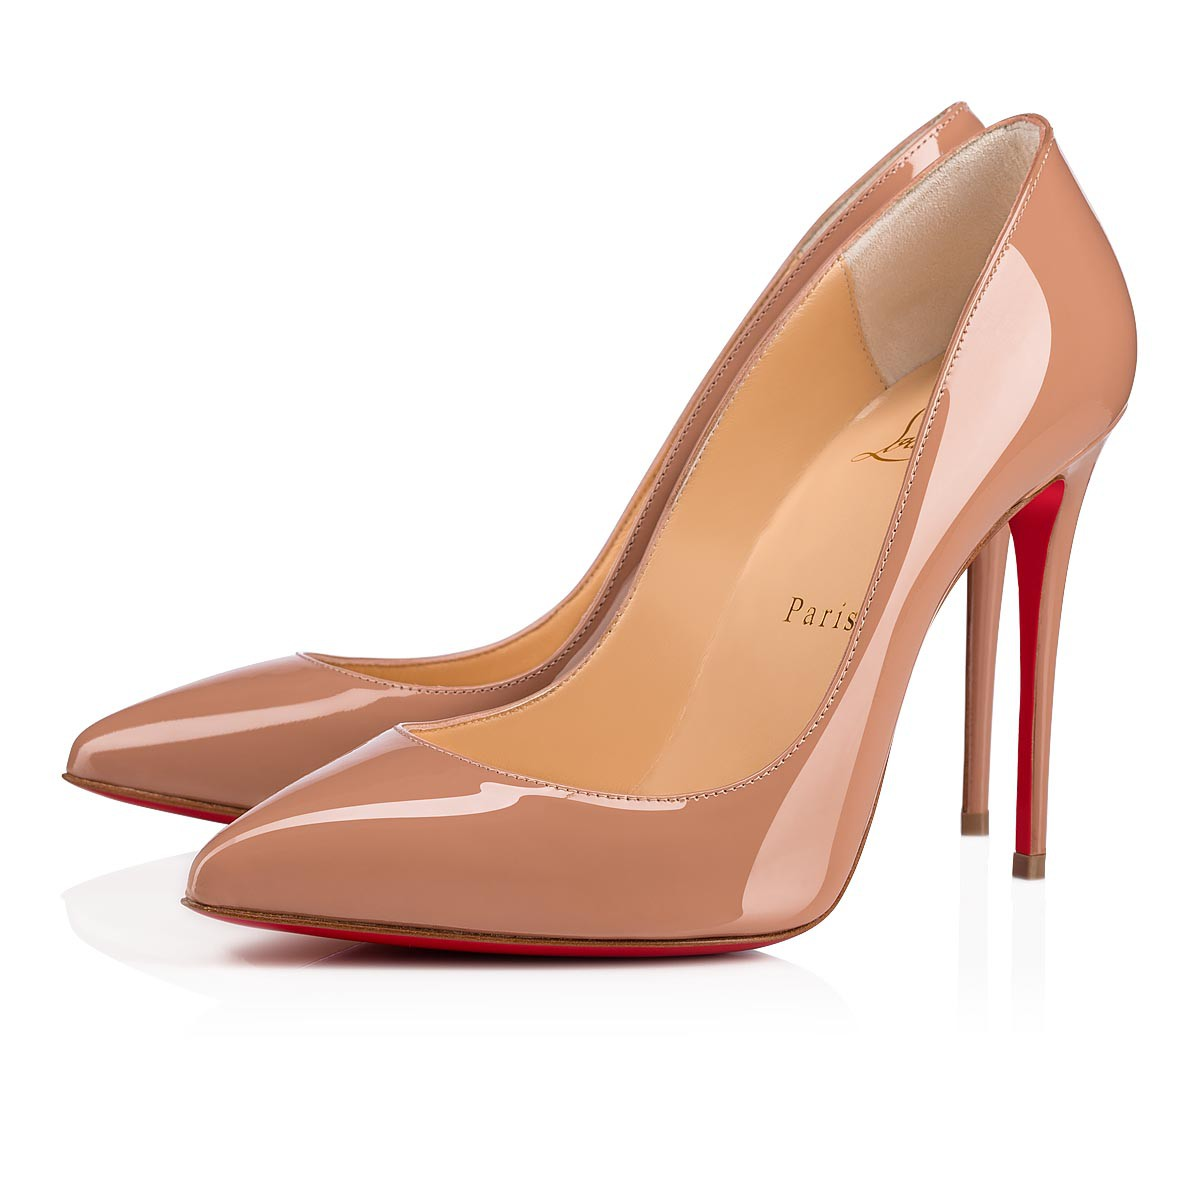 308f1ef0ecab Pigalle Follies 100 Nude Patent Leather - Women Shoes - Christian Louboutin